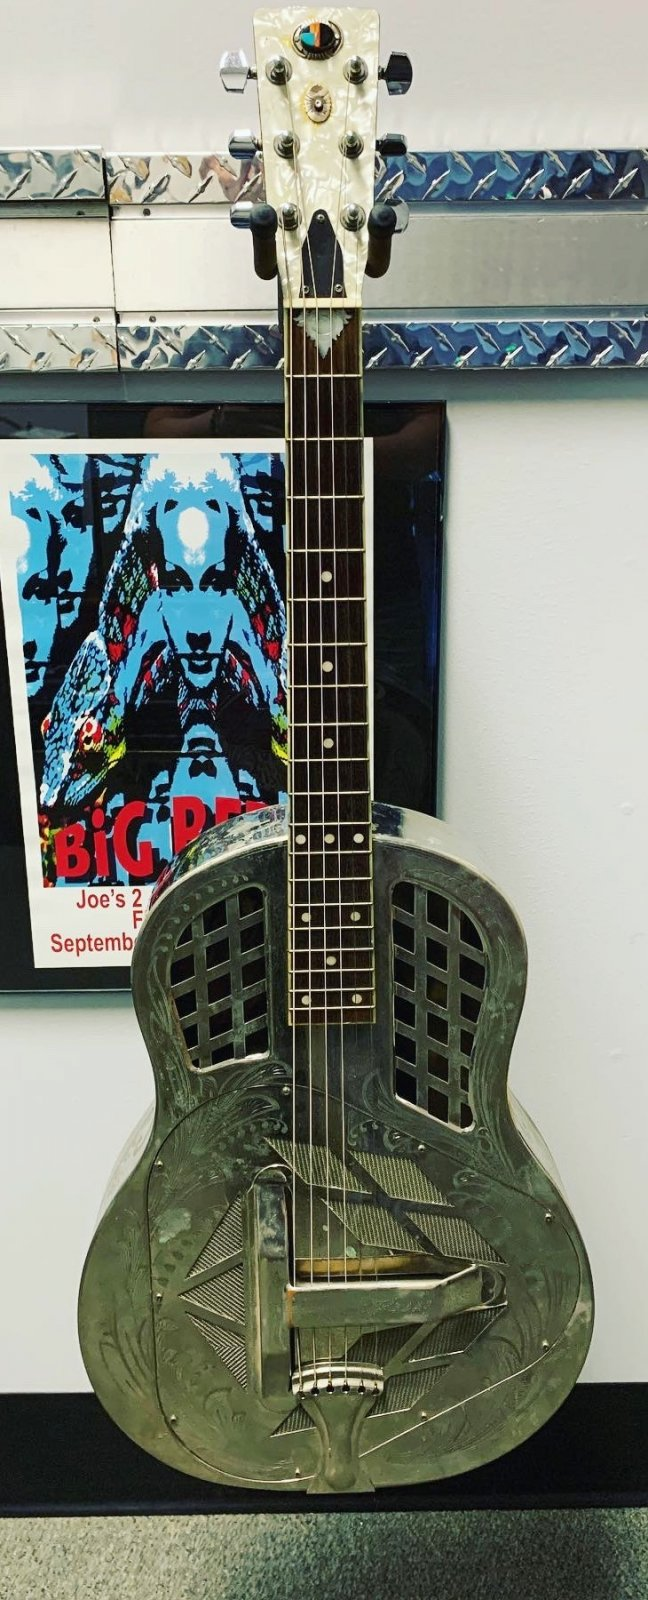 Used (Consignment) Resonator Guitar with Hardshell case